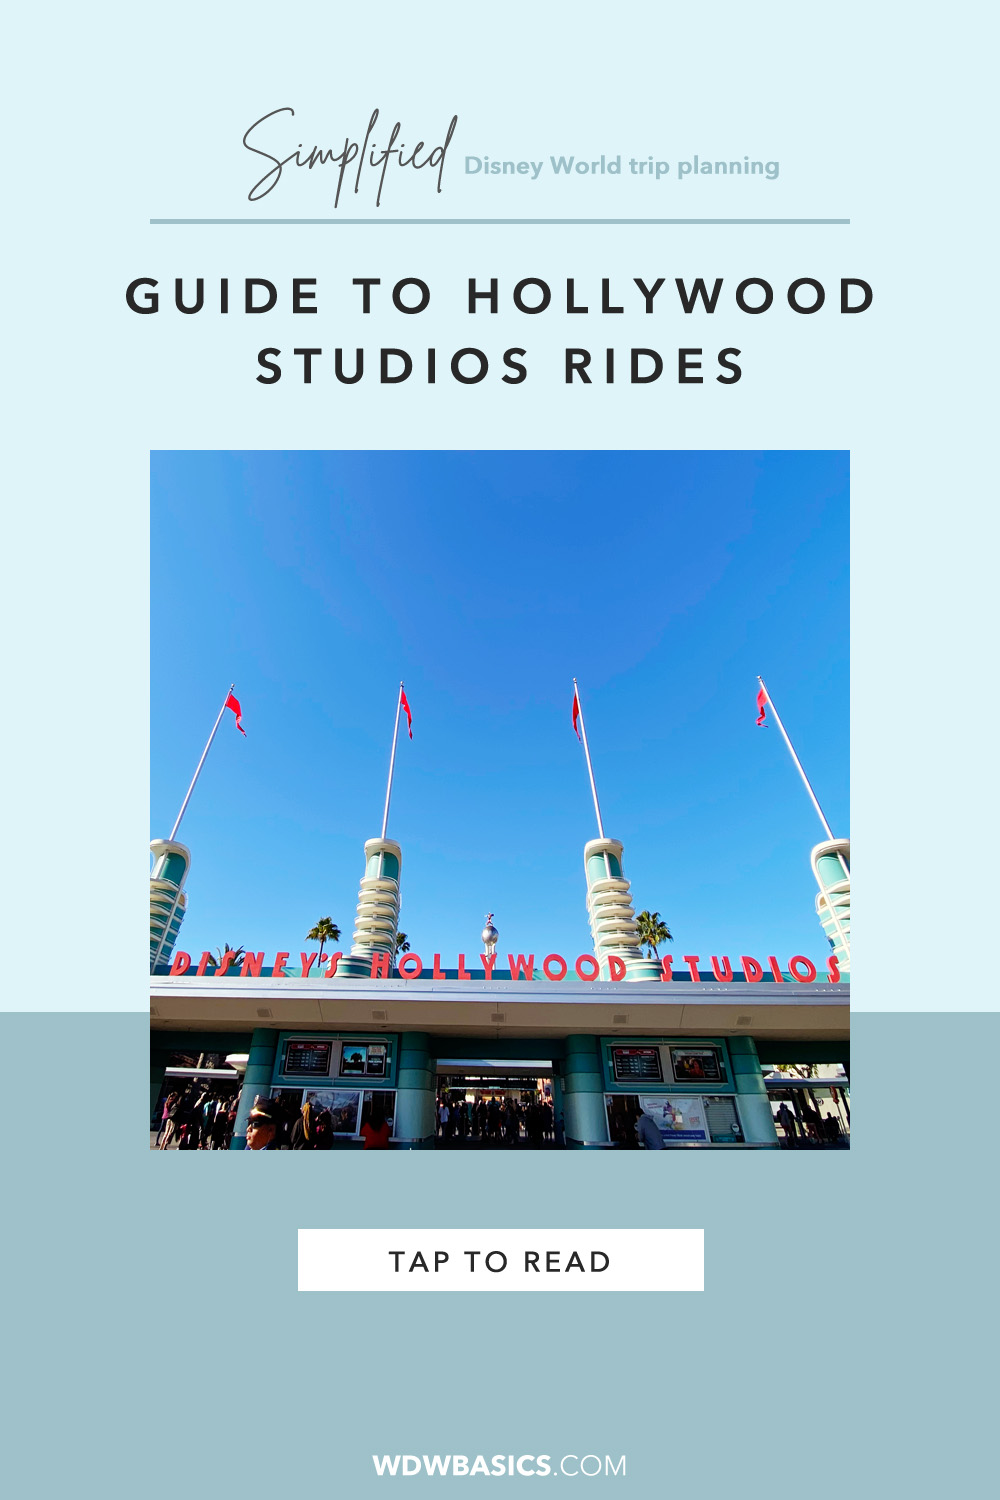 Guide to Hollywood Studios Rides